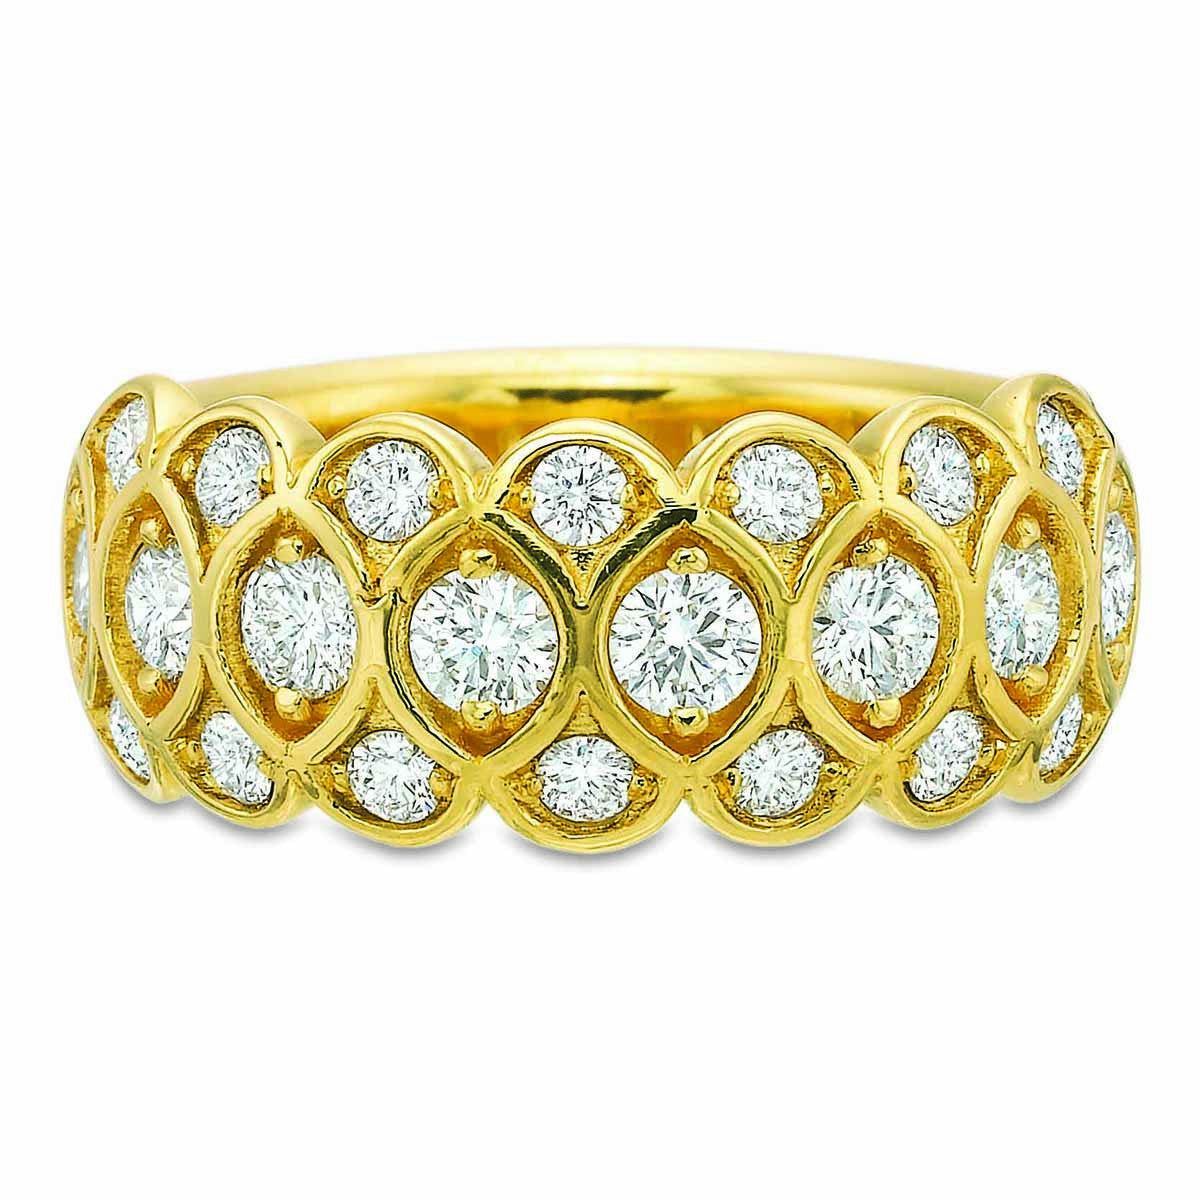 18K Yellow Gold 3 Row Honey Comb Half Eternity Band